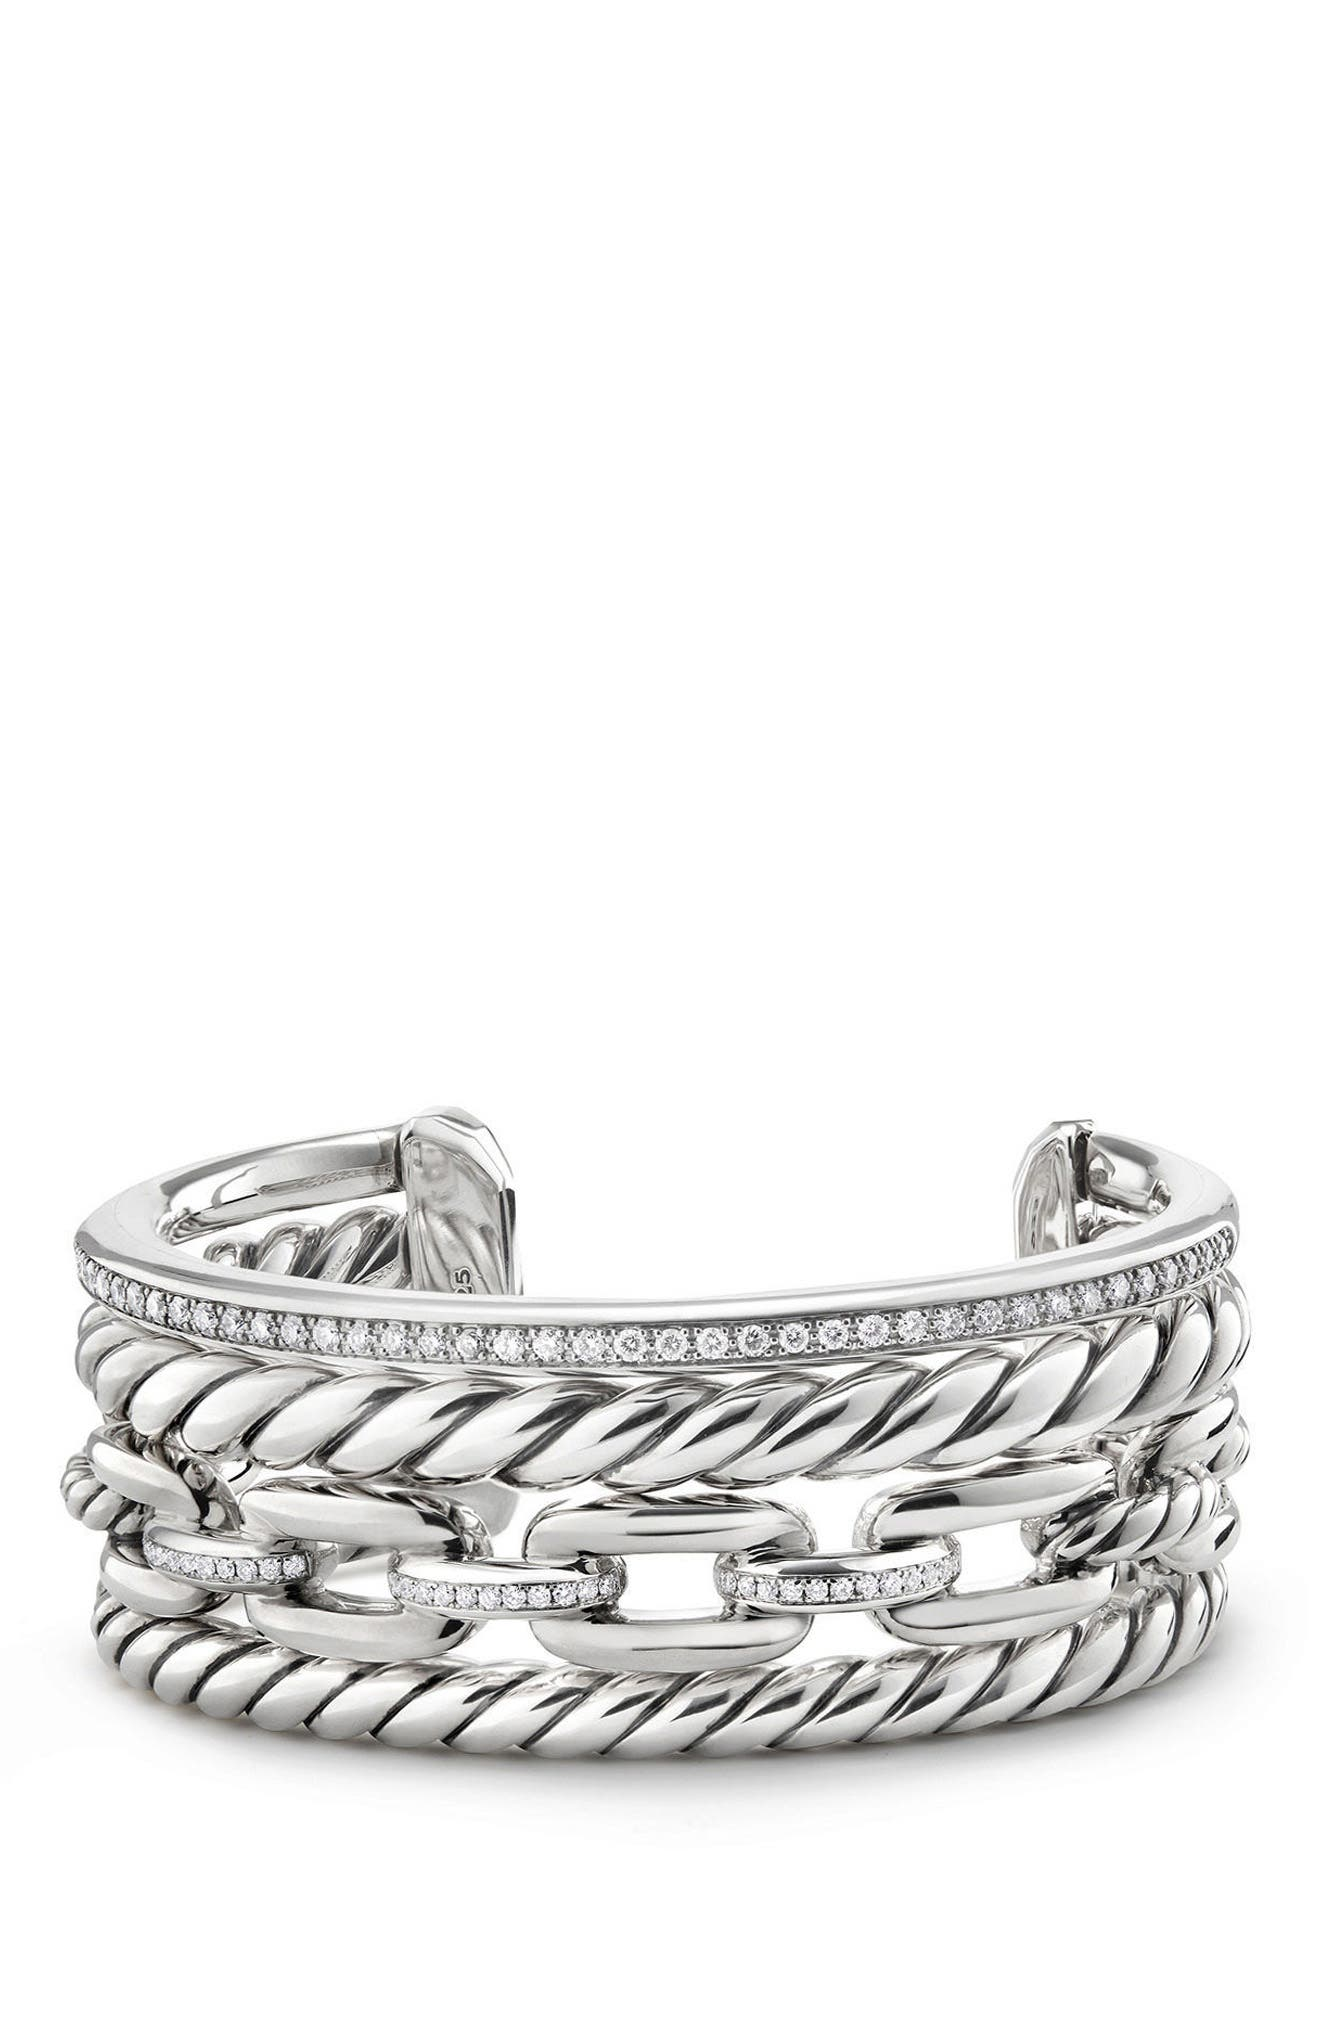 Wellesley Link Cuff with Diamonds, 27mm,                             Main thumbnail 1, color,                             SILVER